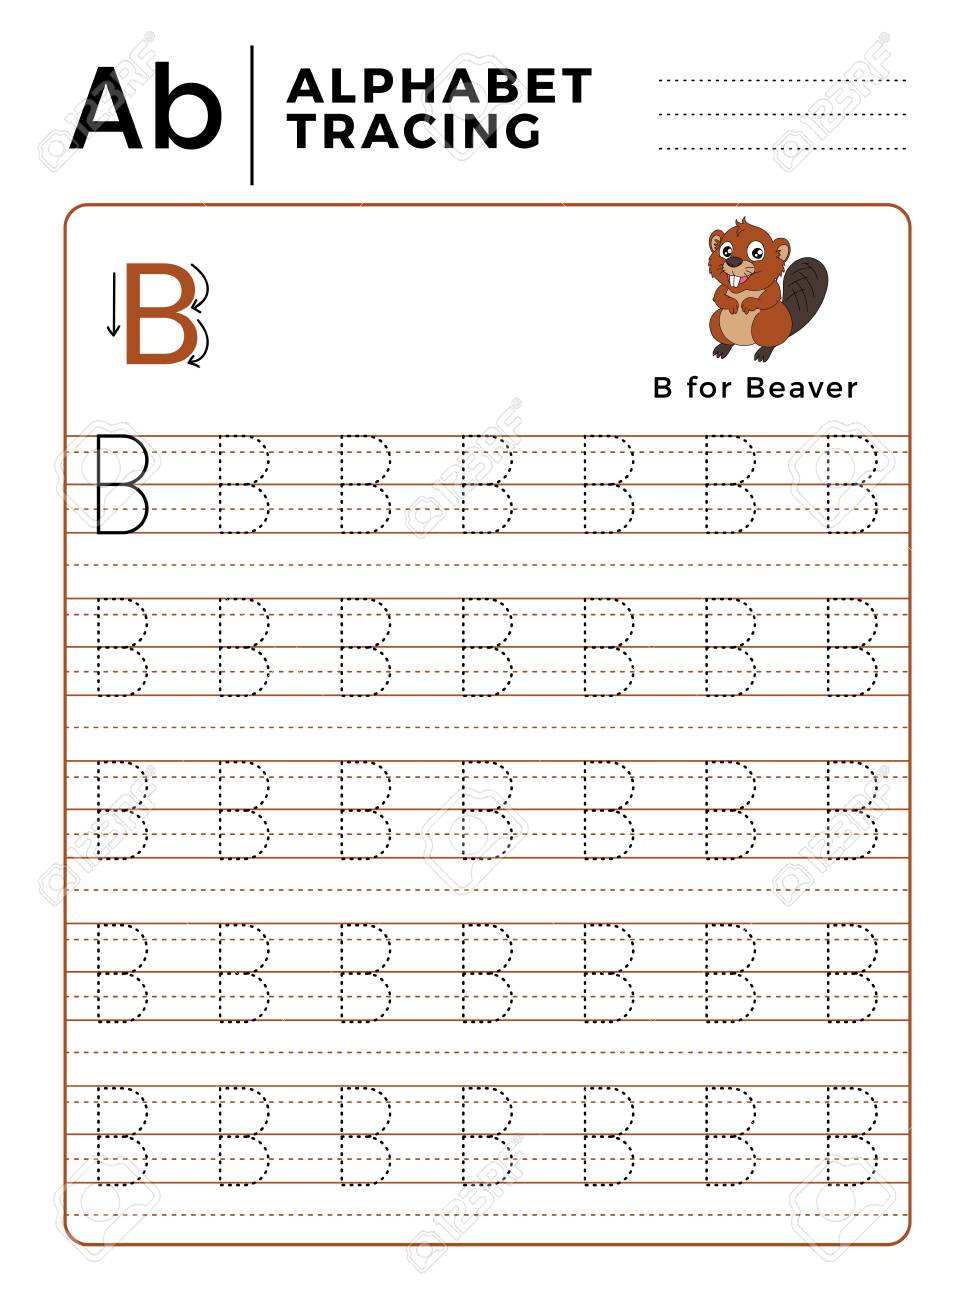 Letter B Alphabet Tracing Book With Example And Funny Beaver.. regarding Alphabet Tracing Worksheets B